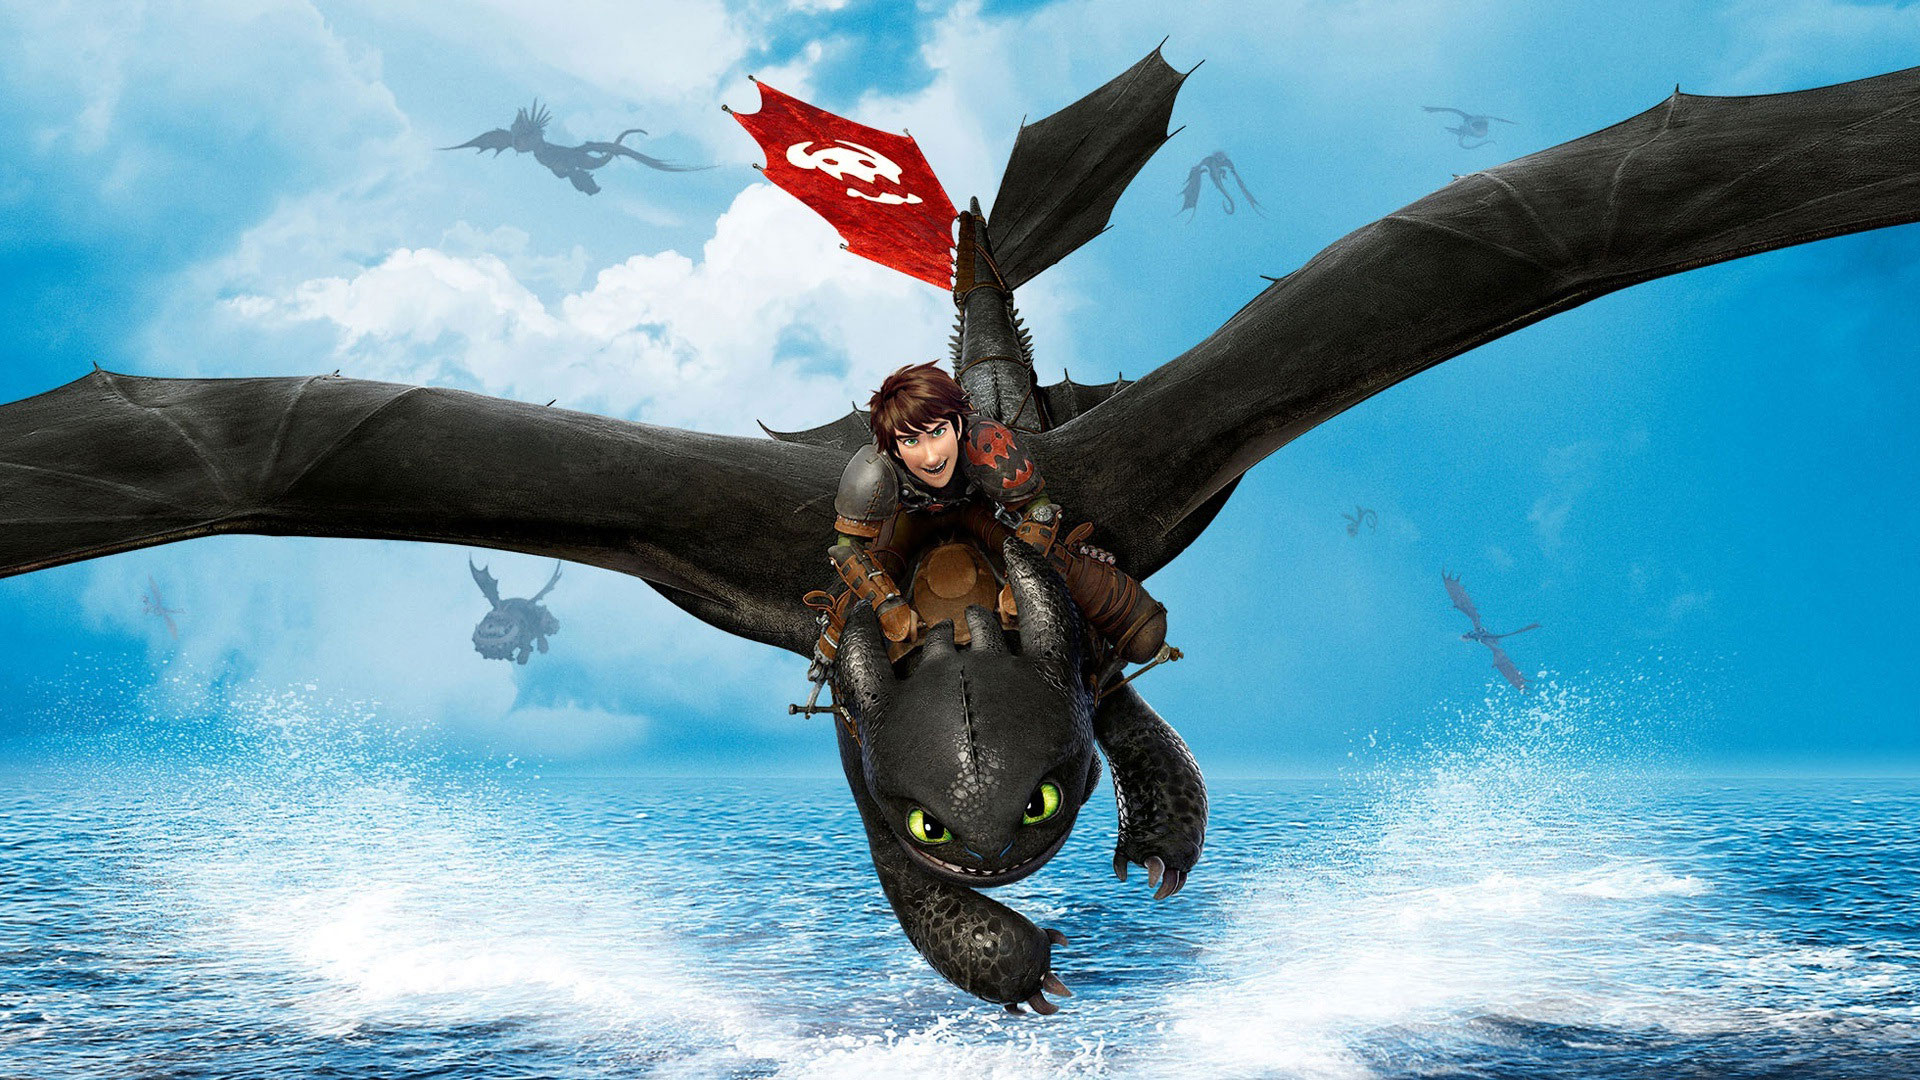 How to train your dragon 3d movie review parenting tips and how to train your dragon 3d movie review parenting tips and advice zaparents blog jozikids ccuart Images